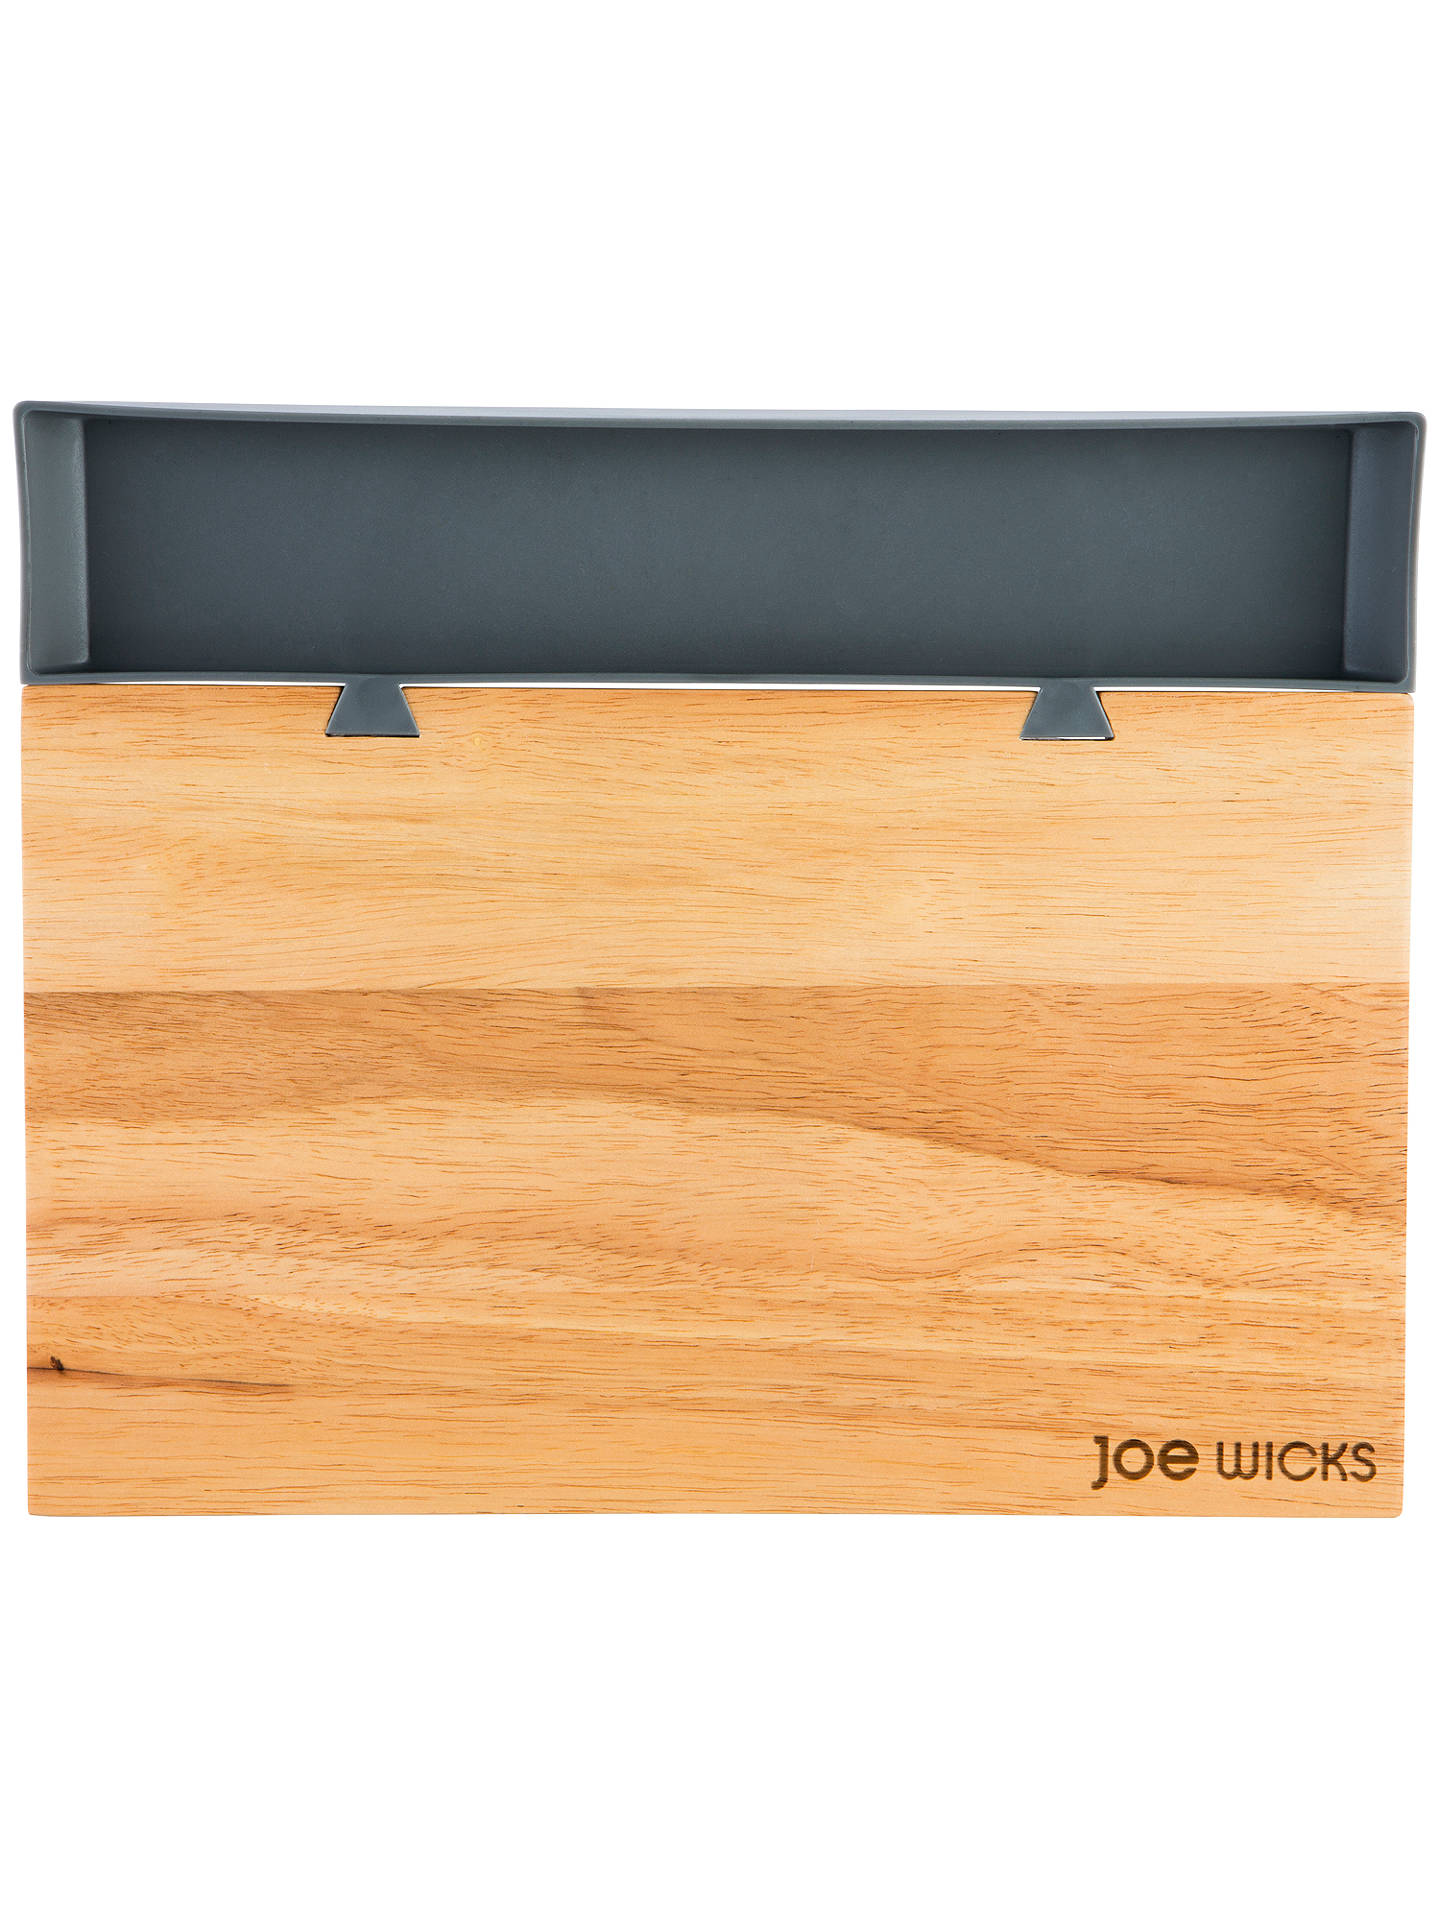 BuyJoe Wicks Wood Chopping Board Food Tray, L35cm Online at johnlewis.com